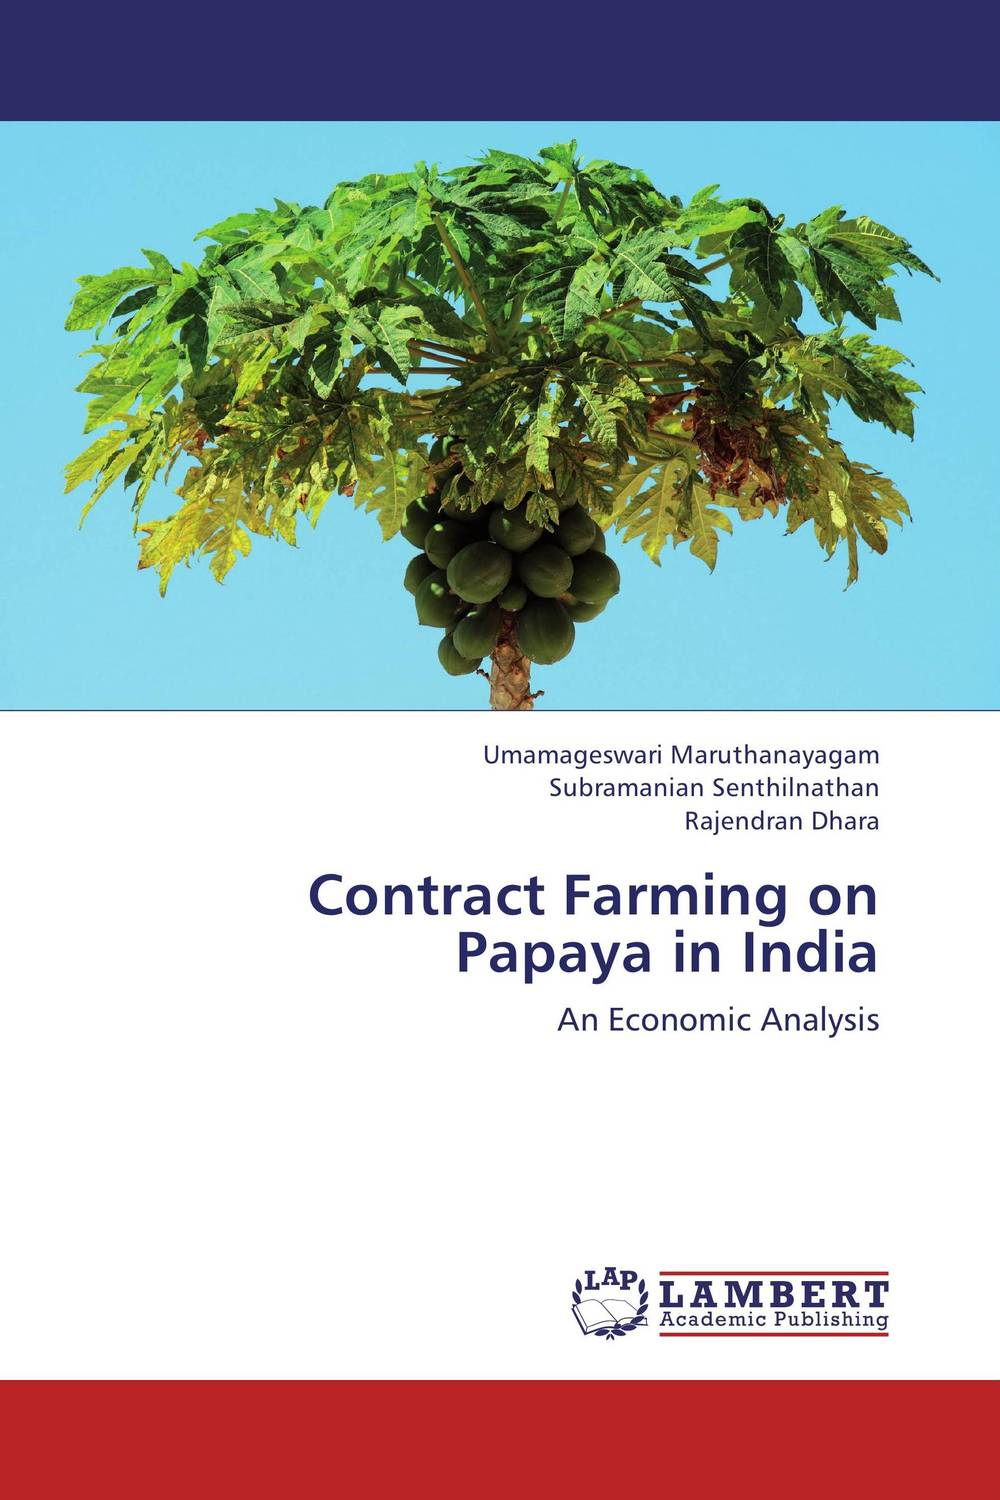 Contract Farming on Papaya in India saeid navid effect of papaya leaf meal and vitamin d3 on meat quality